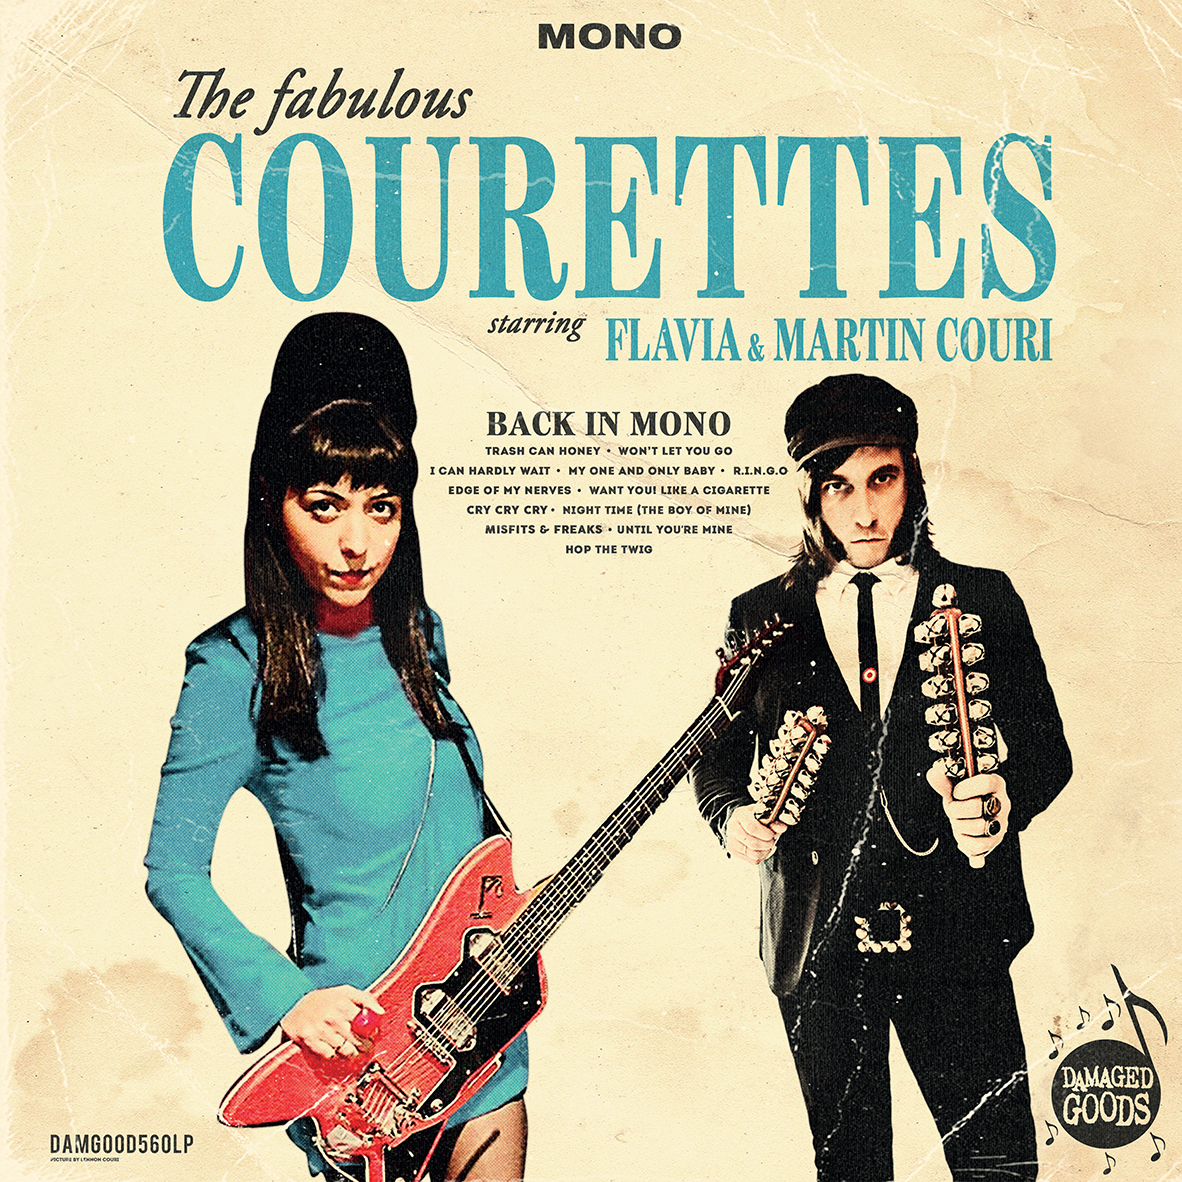 THE COURETTES – BACK IN MONO